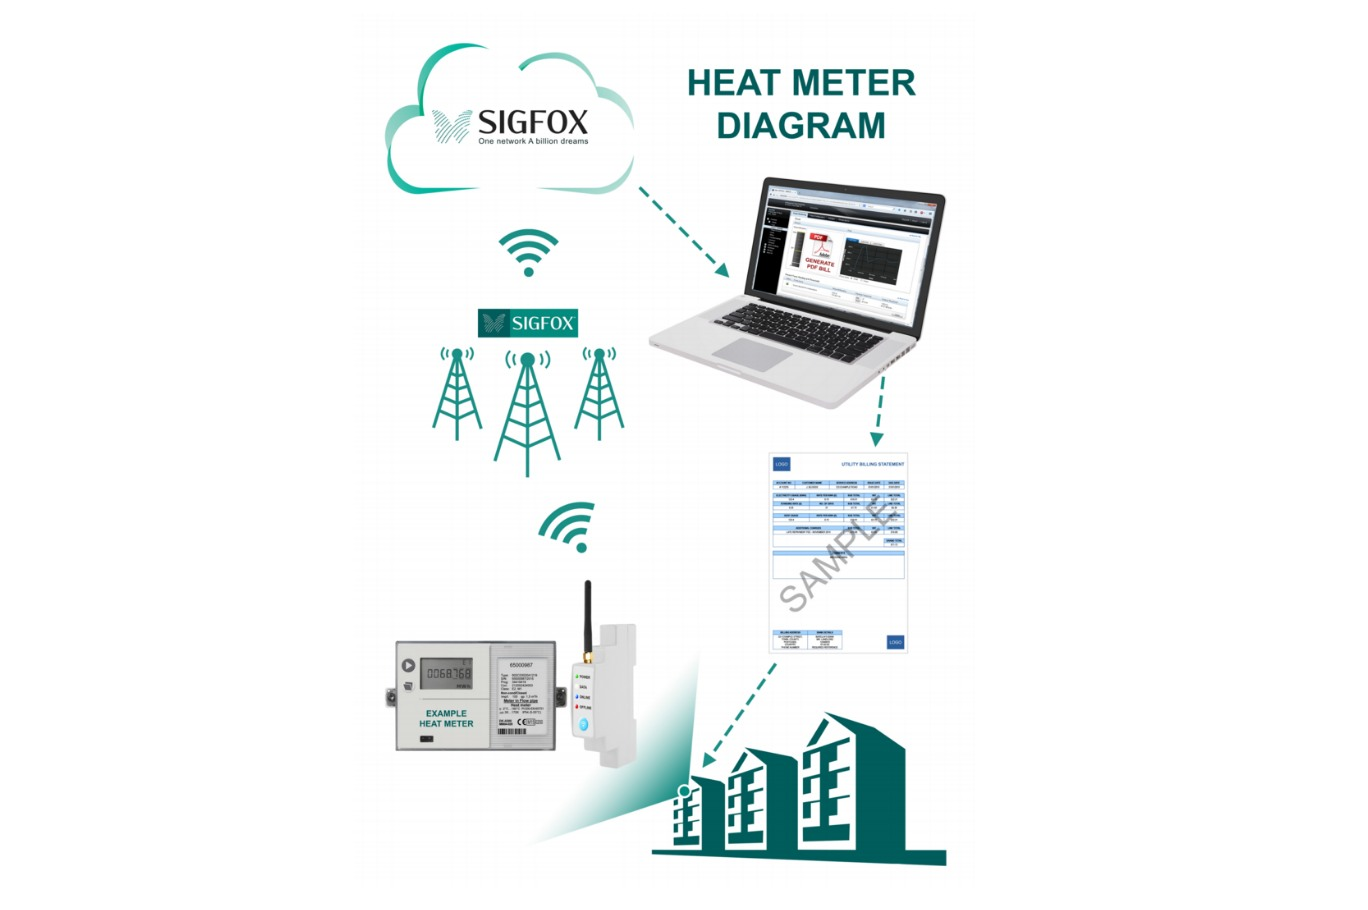 The Webthings AMR is an automated meter reader that can take readings from  Electricity, Gas , Water, Heat, Solar & Other Renewables.